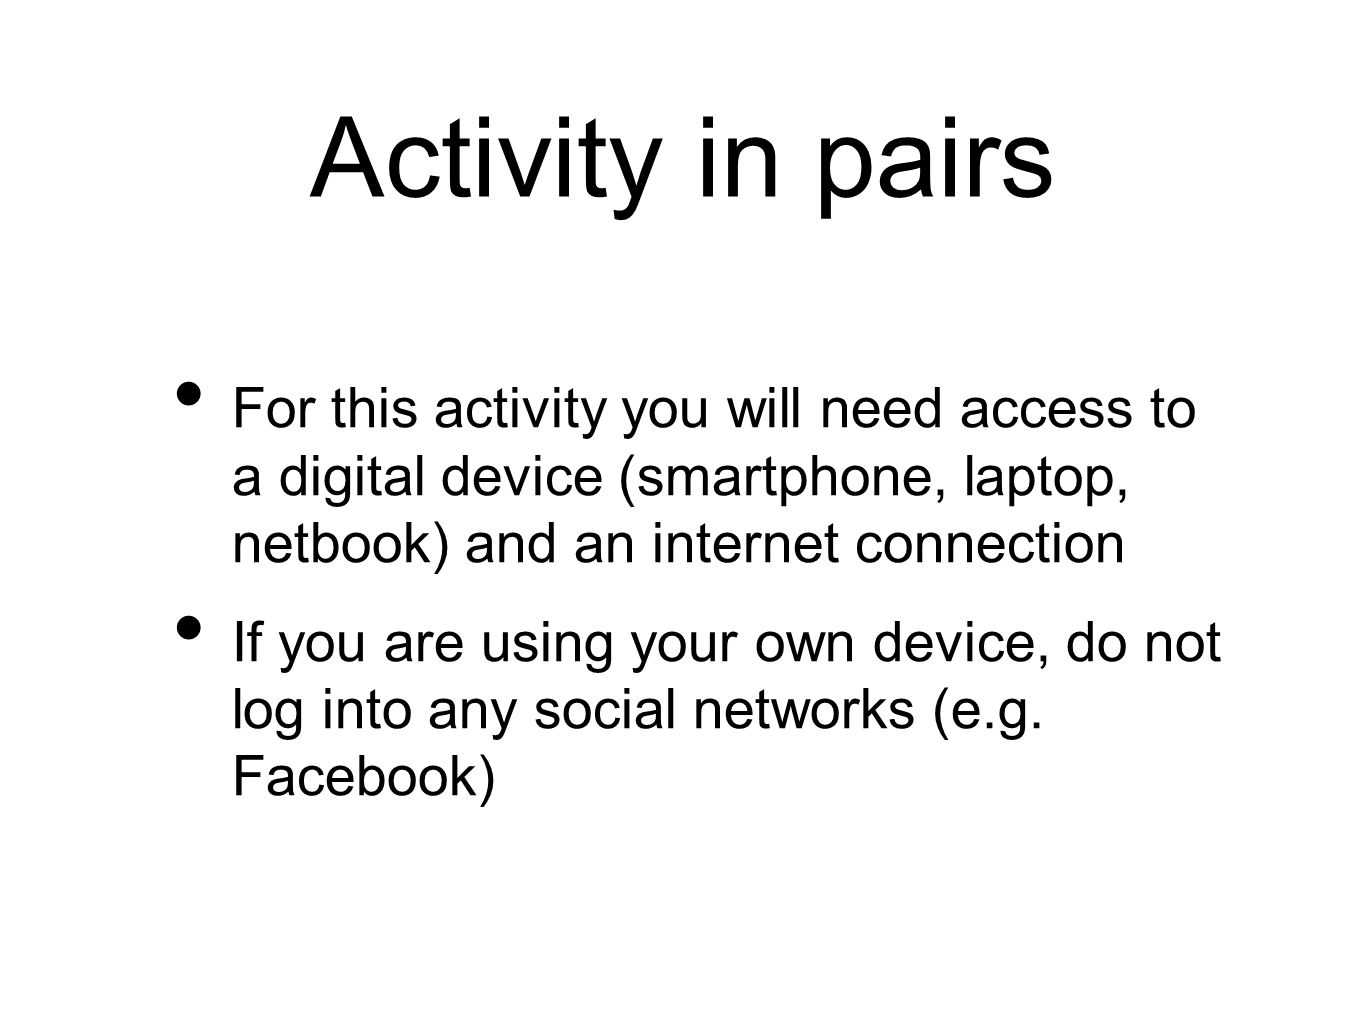 Activity in pairs For this activity you will need access to a digital device (smartphone, laptop, netbook) and an internet connection If you are using